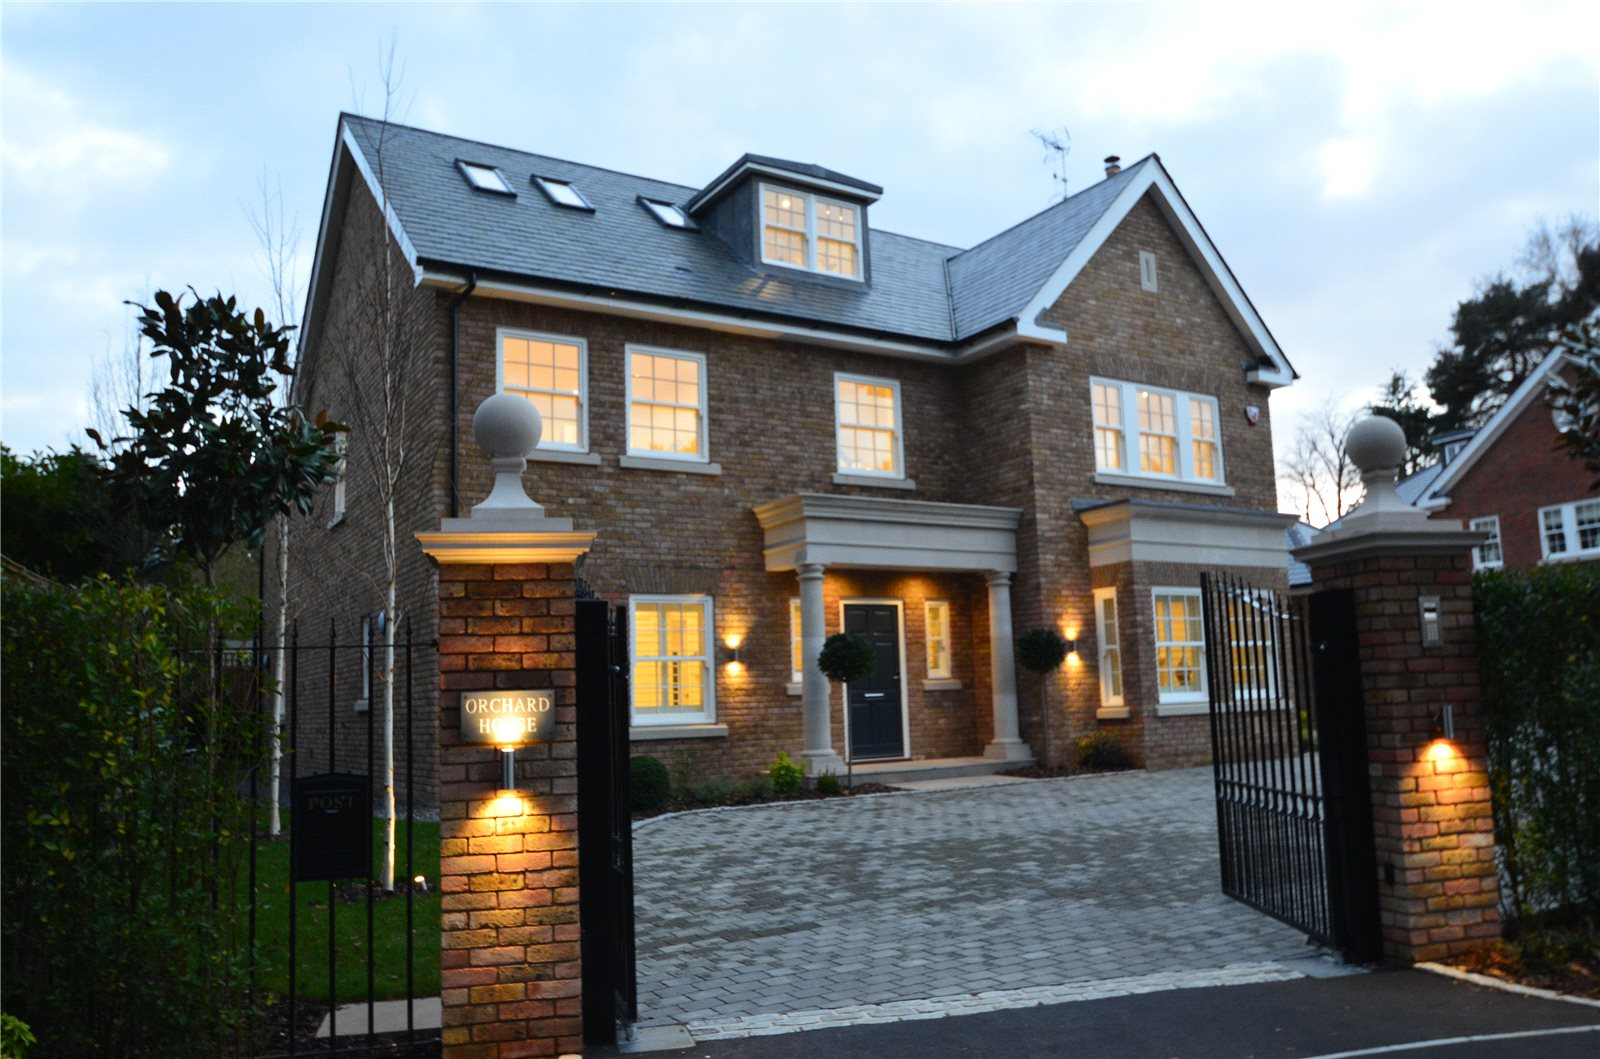 Additional photo for property listing at Whynstones Road, Ascot, Berkshire, SL5 Ascot, Inglaterra